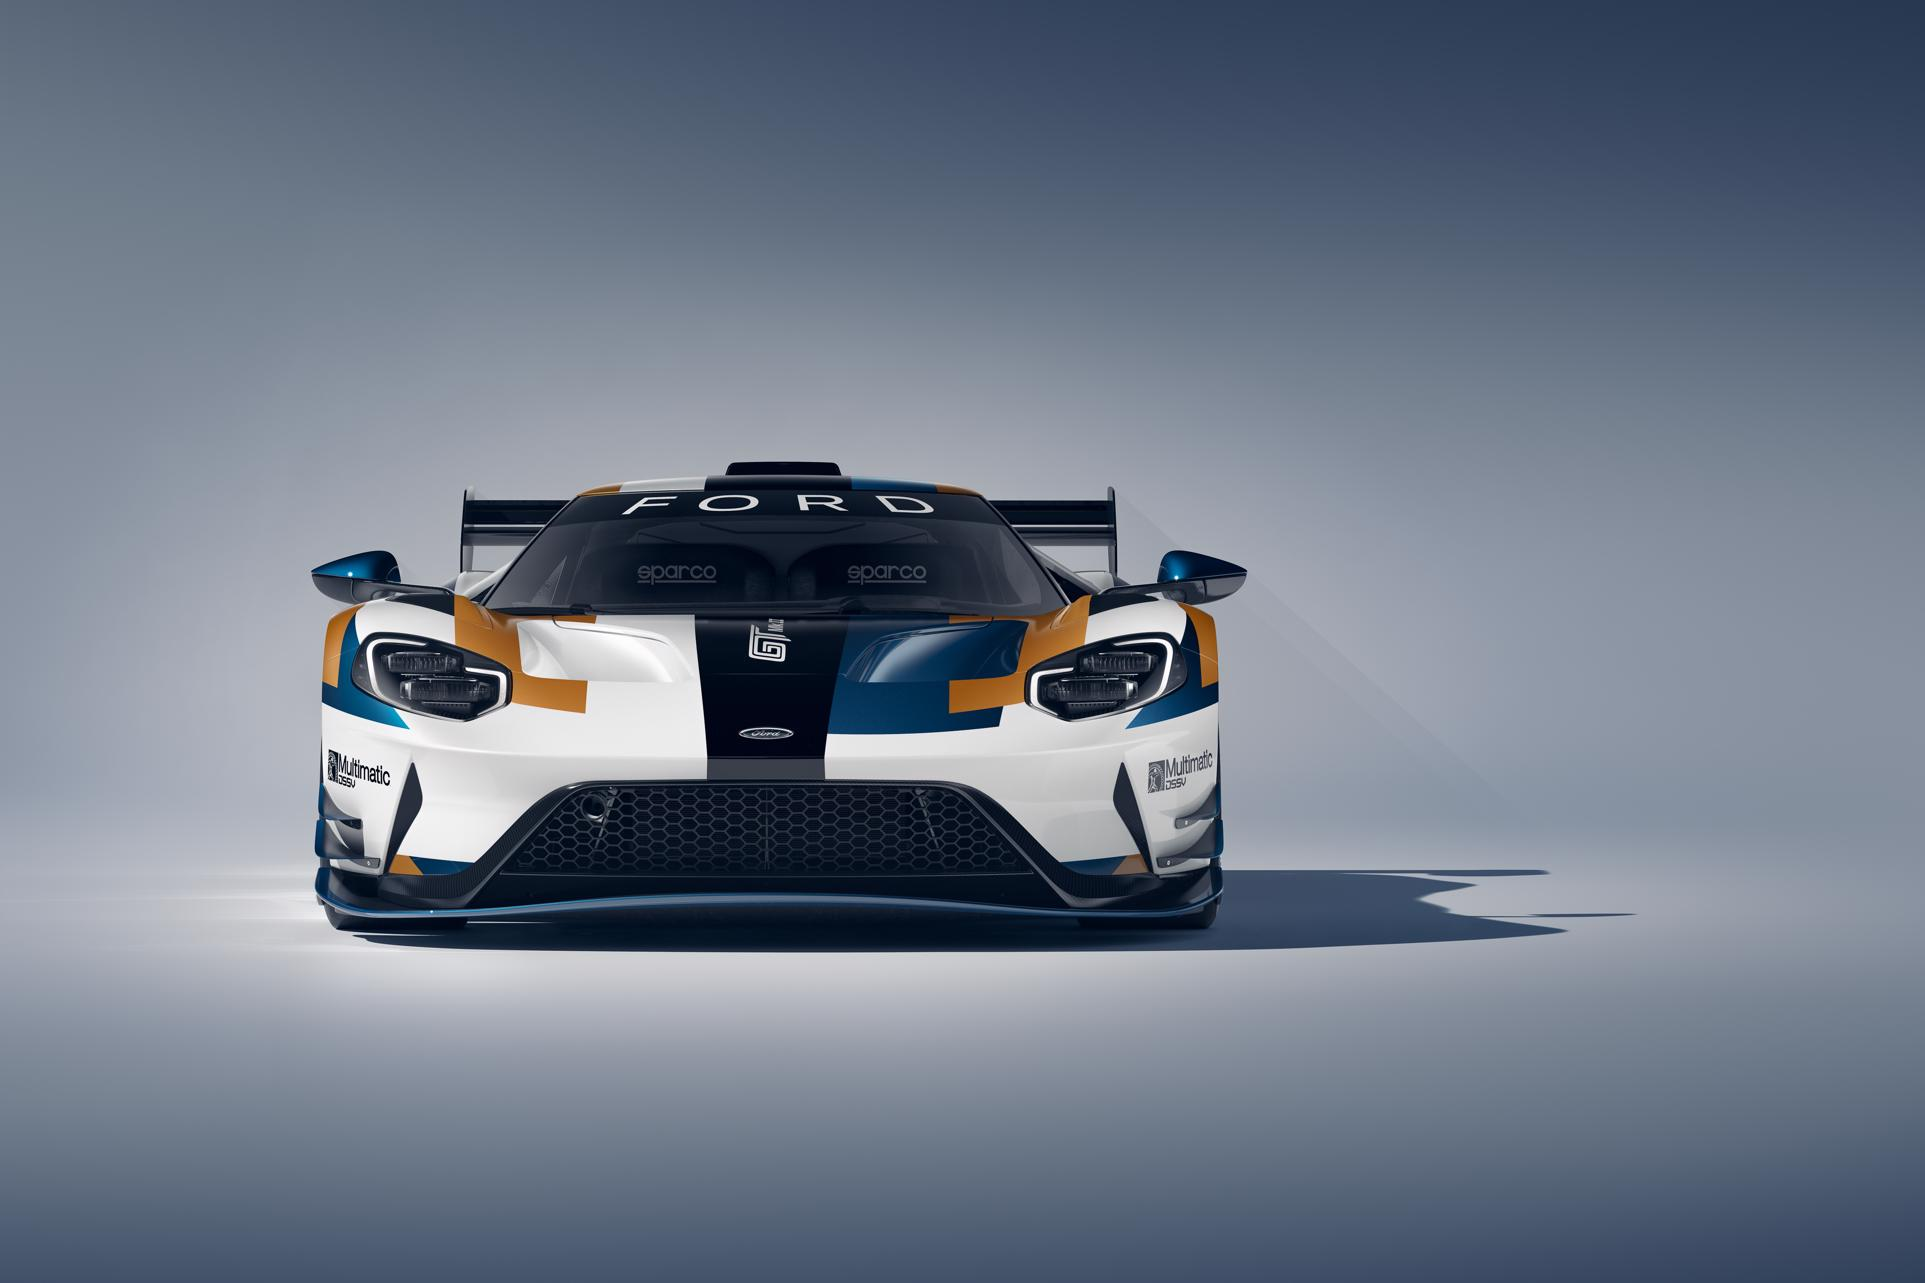 This is the track-only, £1m Ford GT Mk II